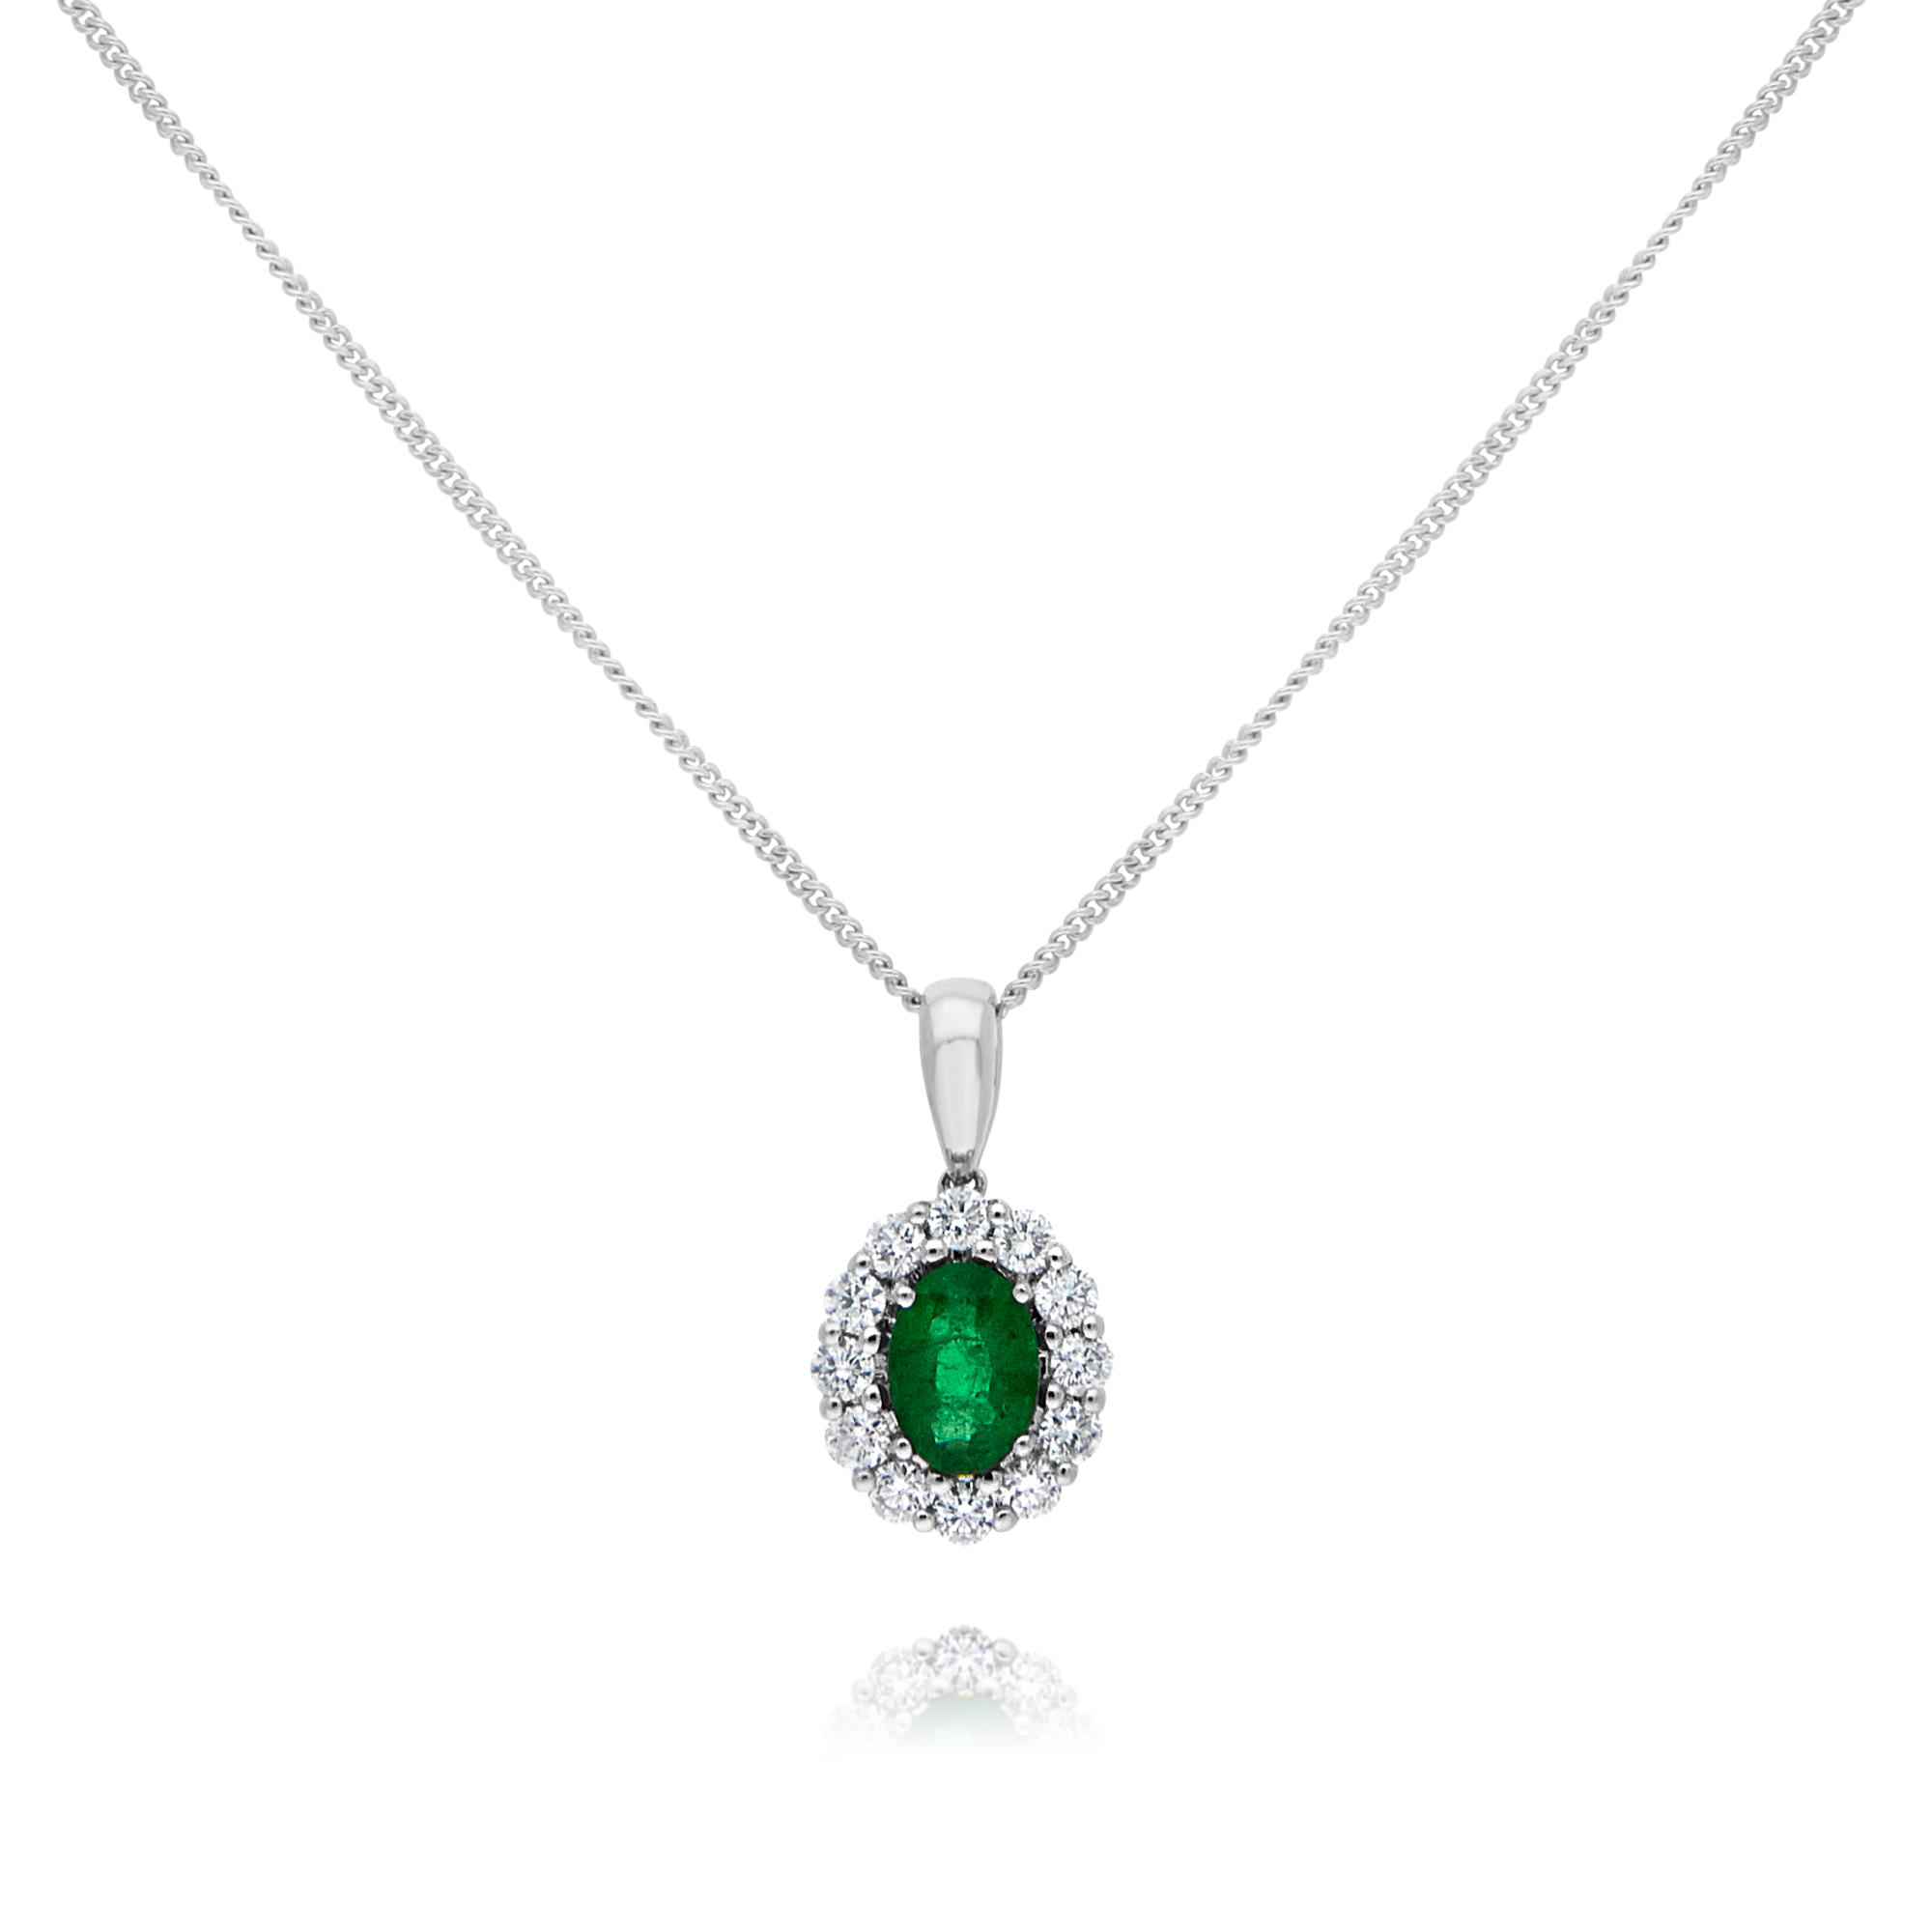 18ct Gold Emerald and Diamond Pendant